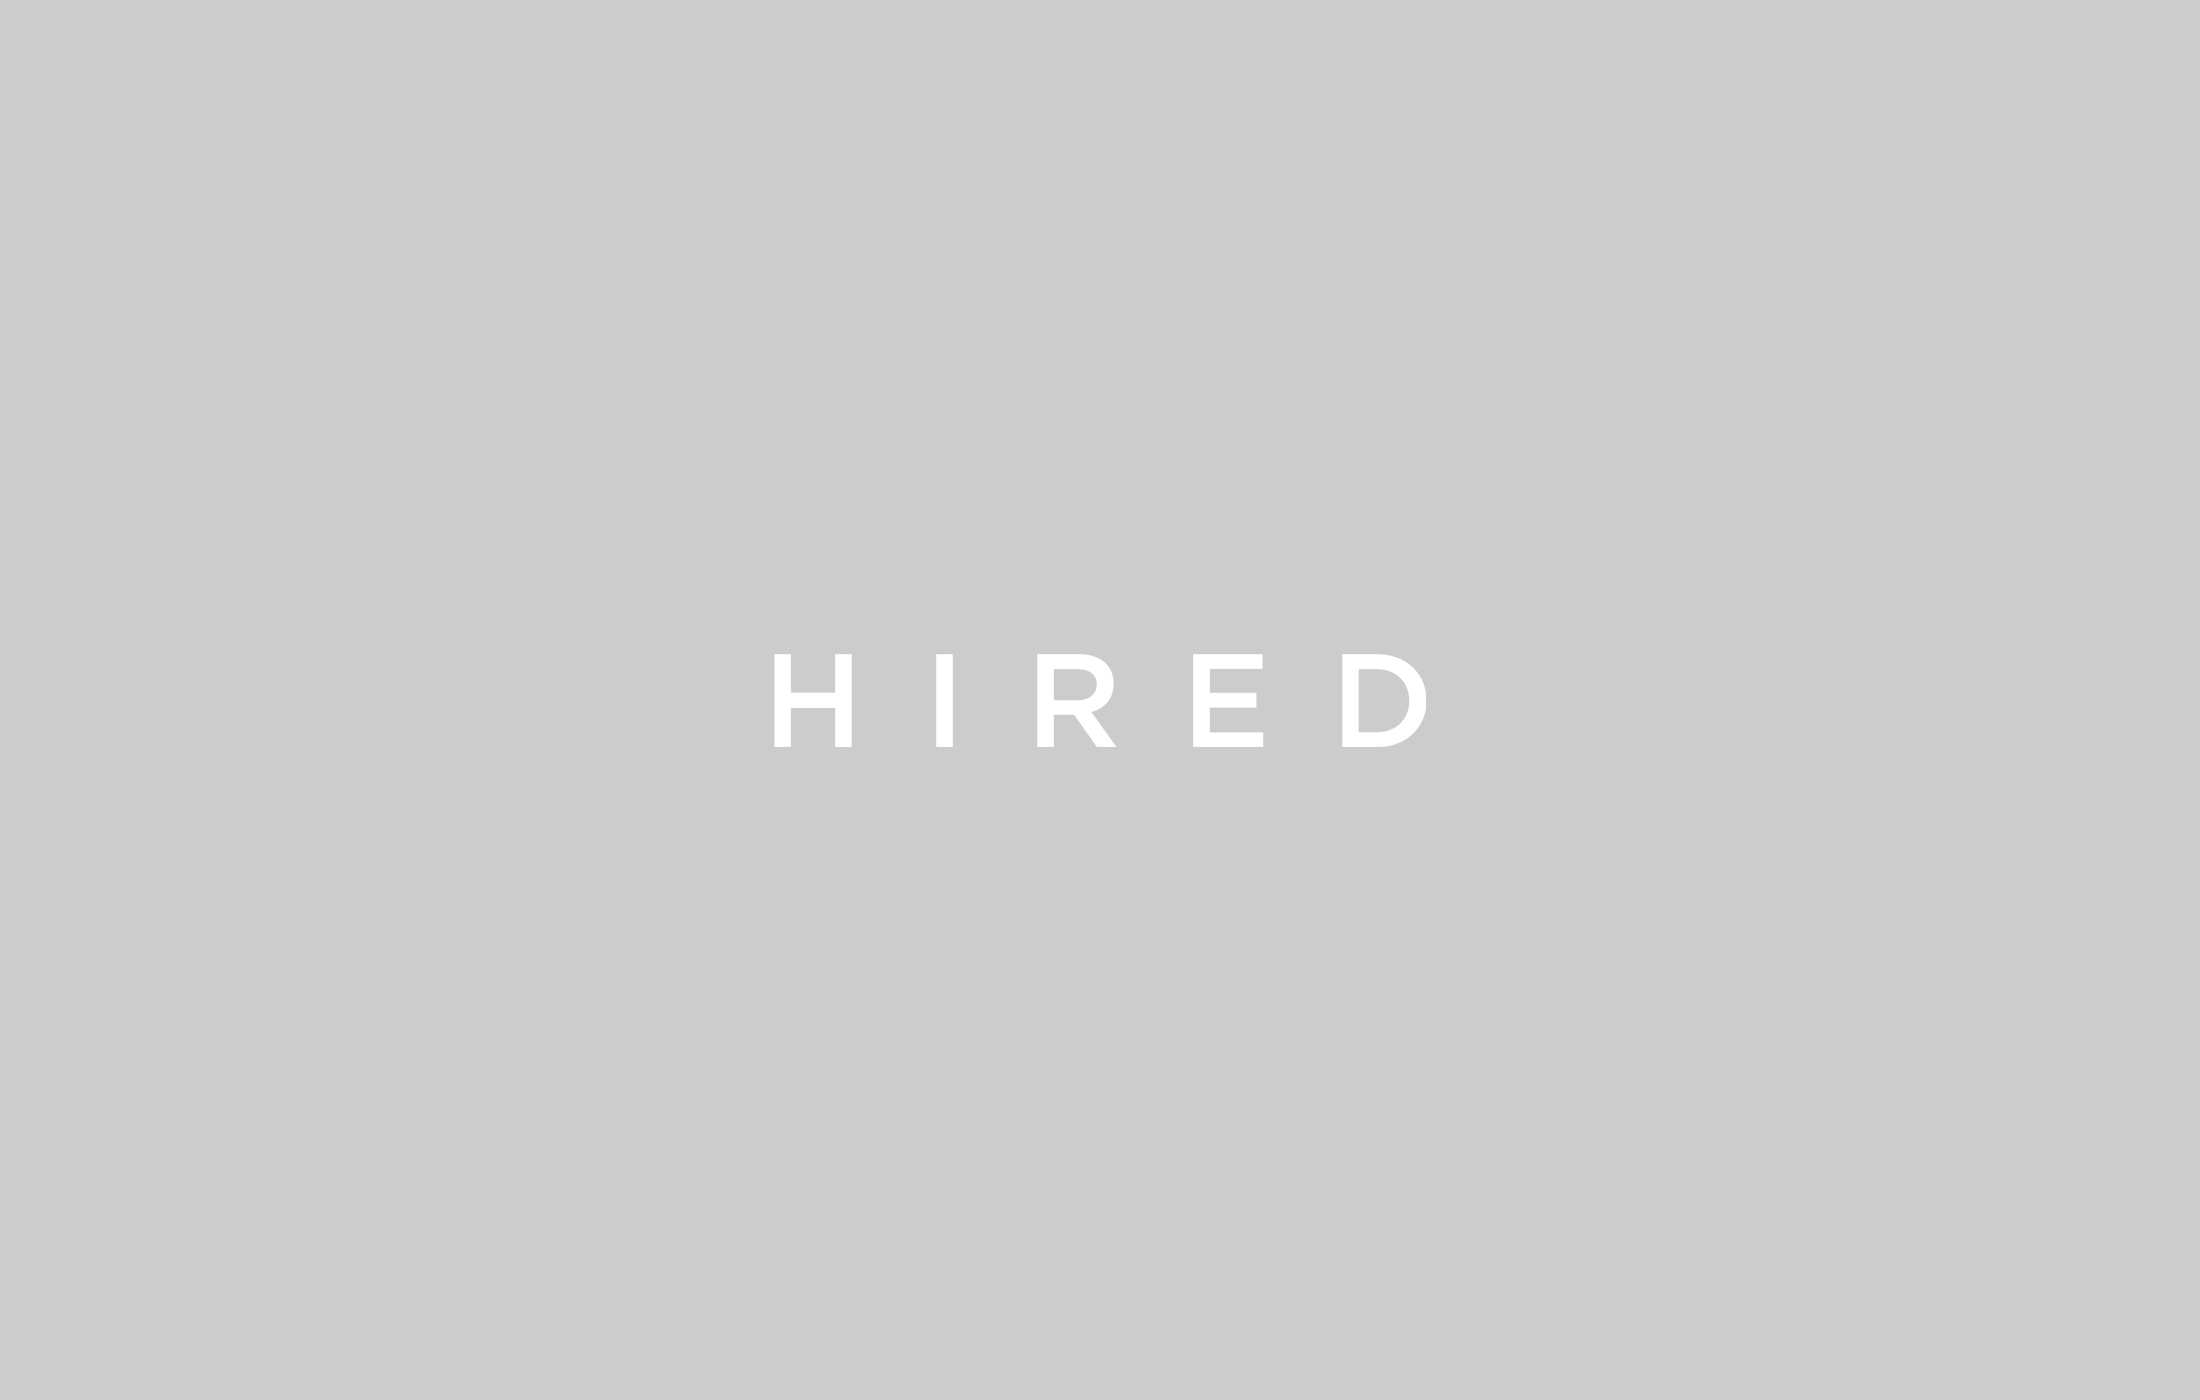 hired-closes-15-million-series-a-round